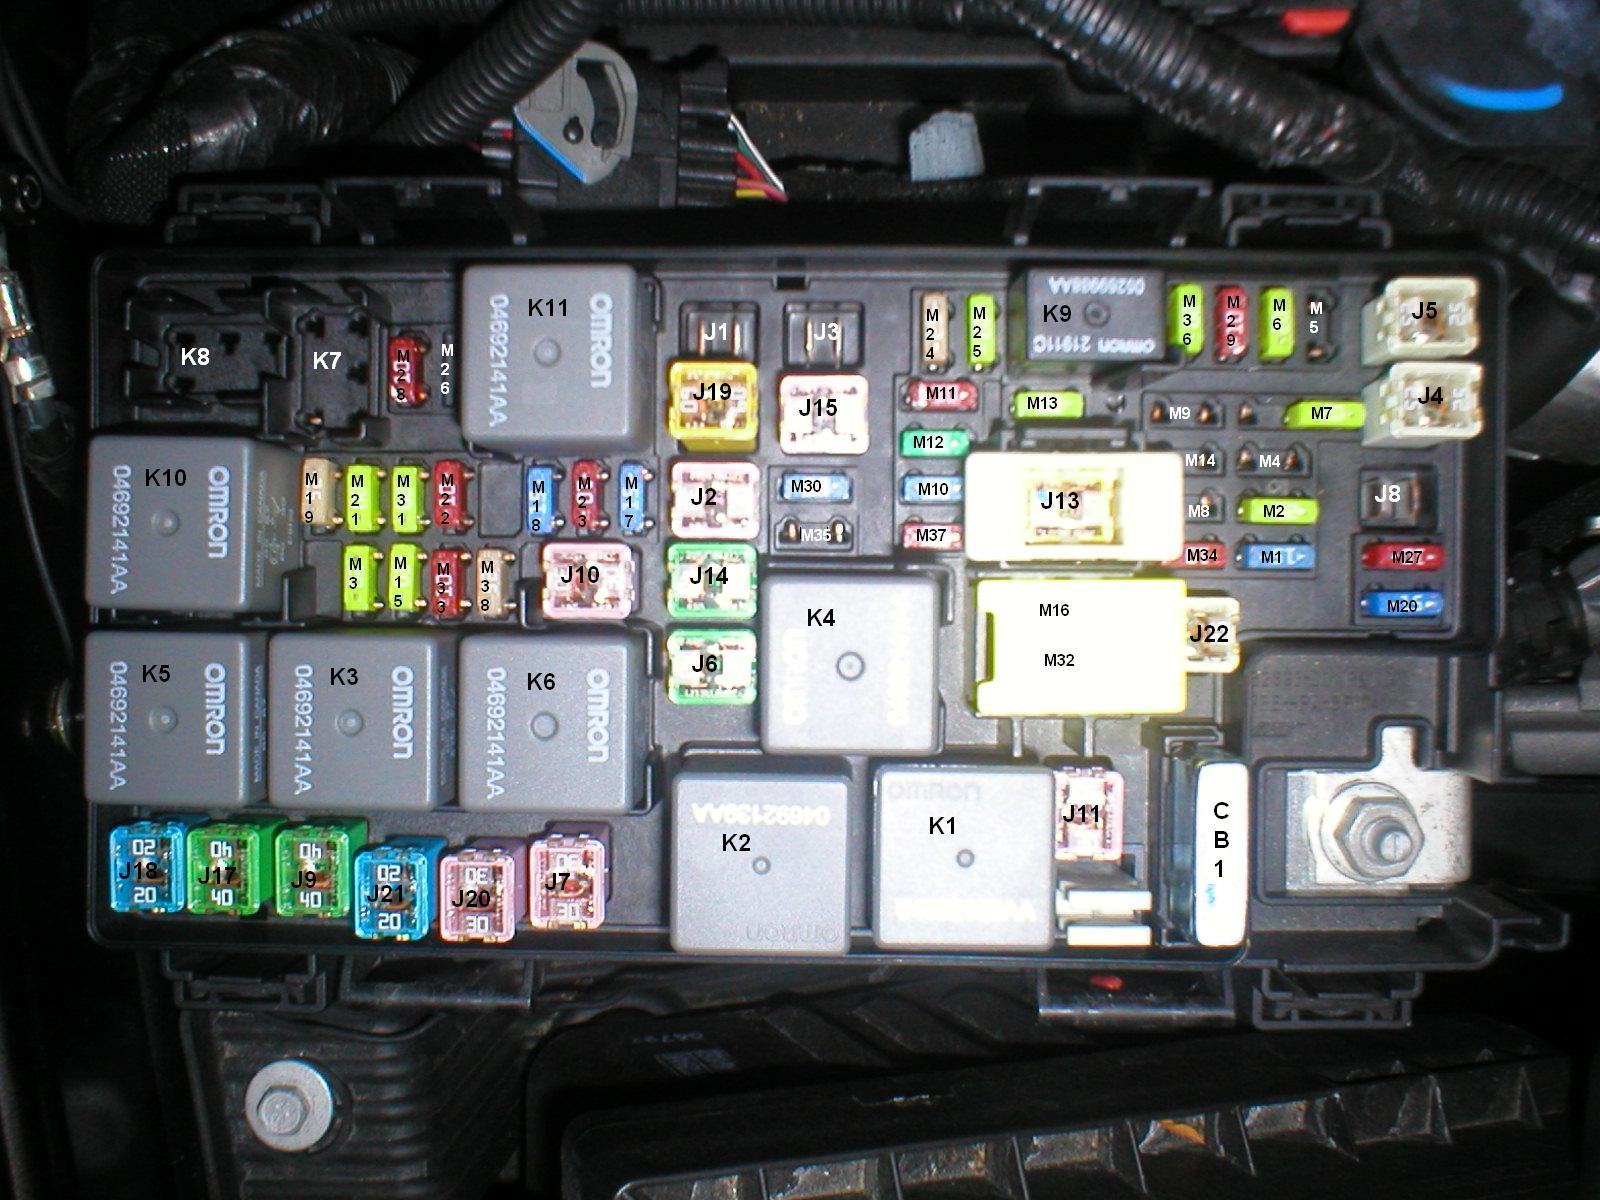 hight resolution of jeep jk fuse box map layout diagram jeepforum com 2013 patriot horn fuse box jk fuse